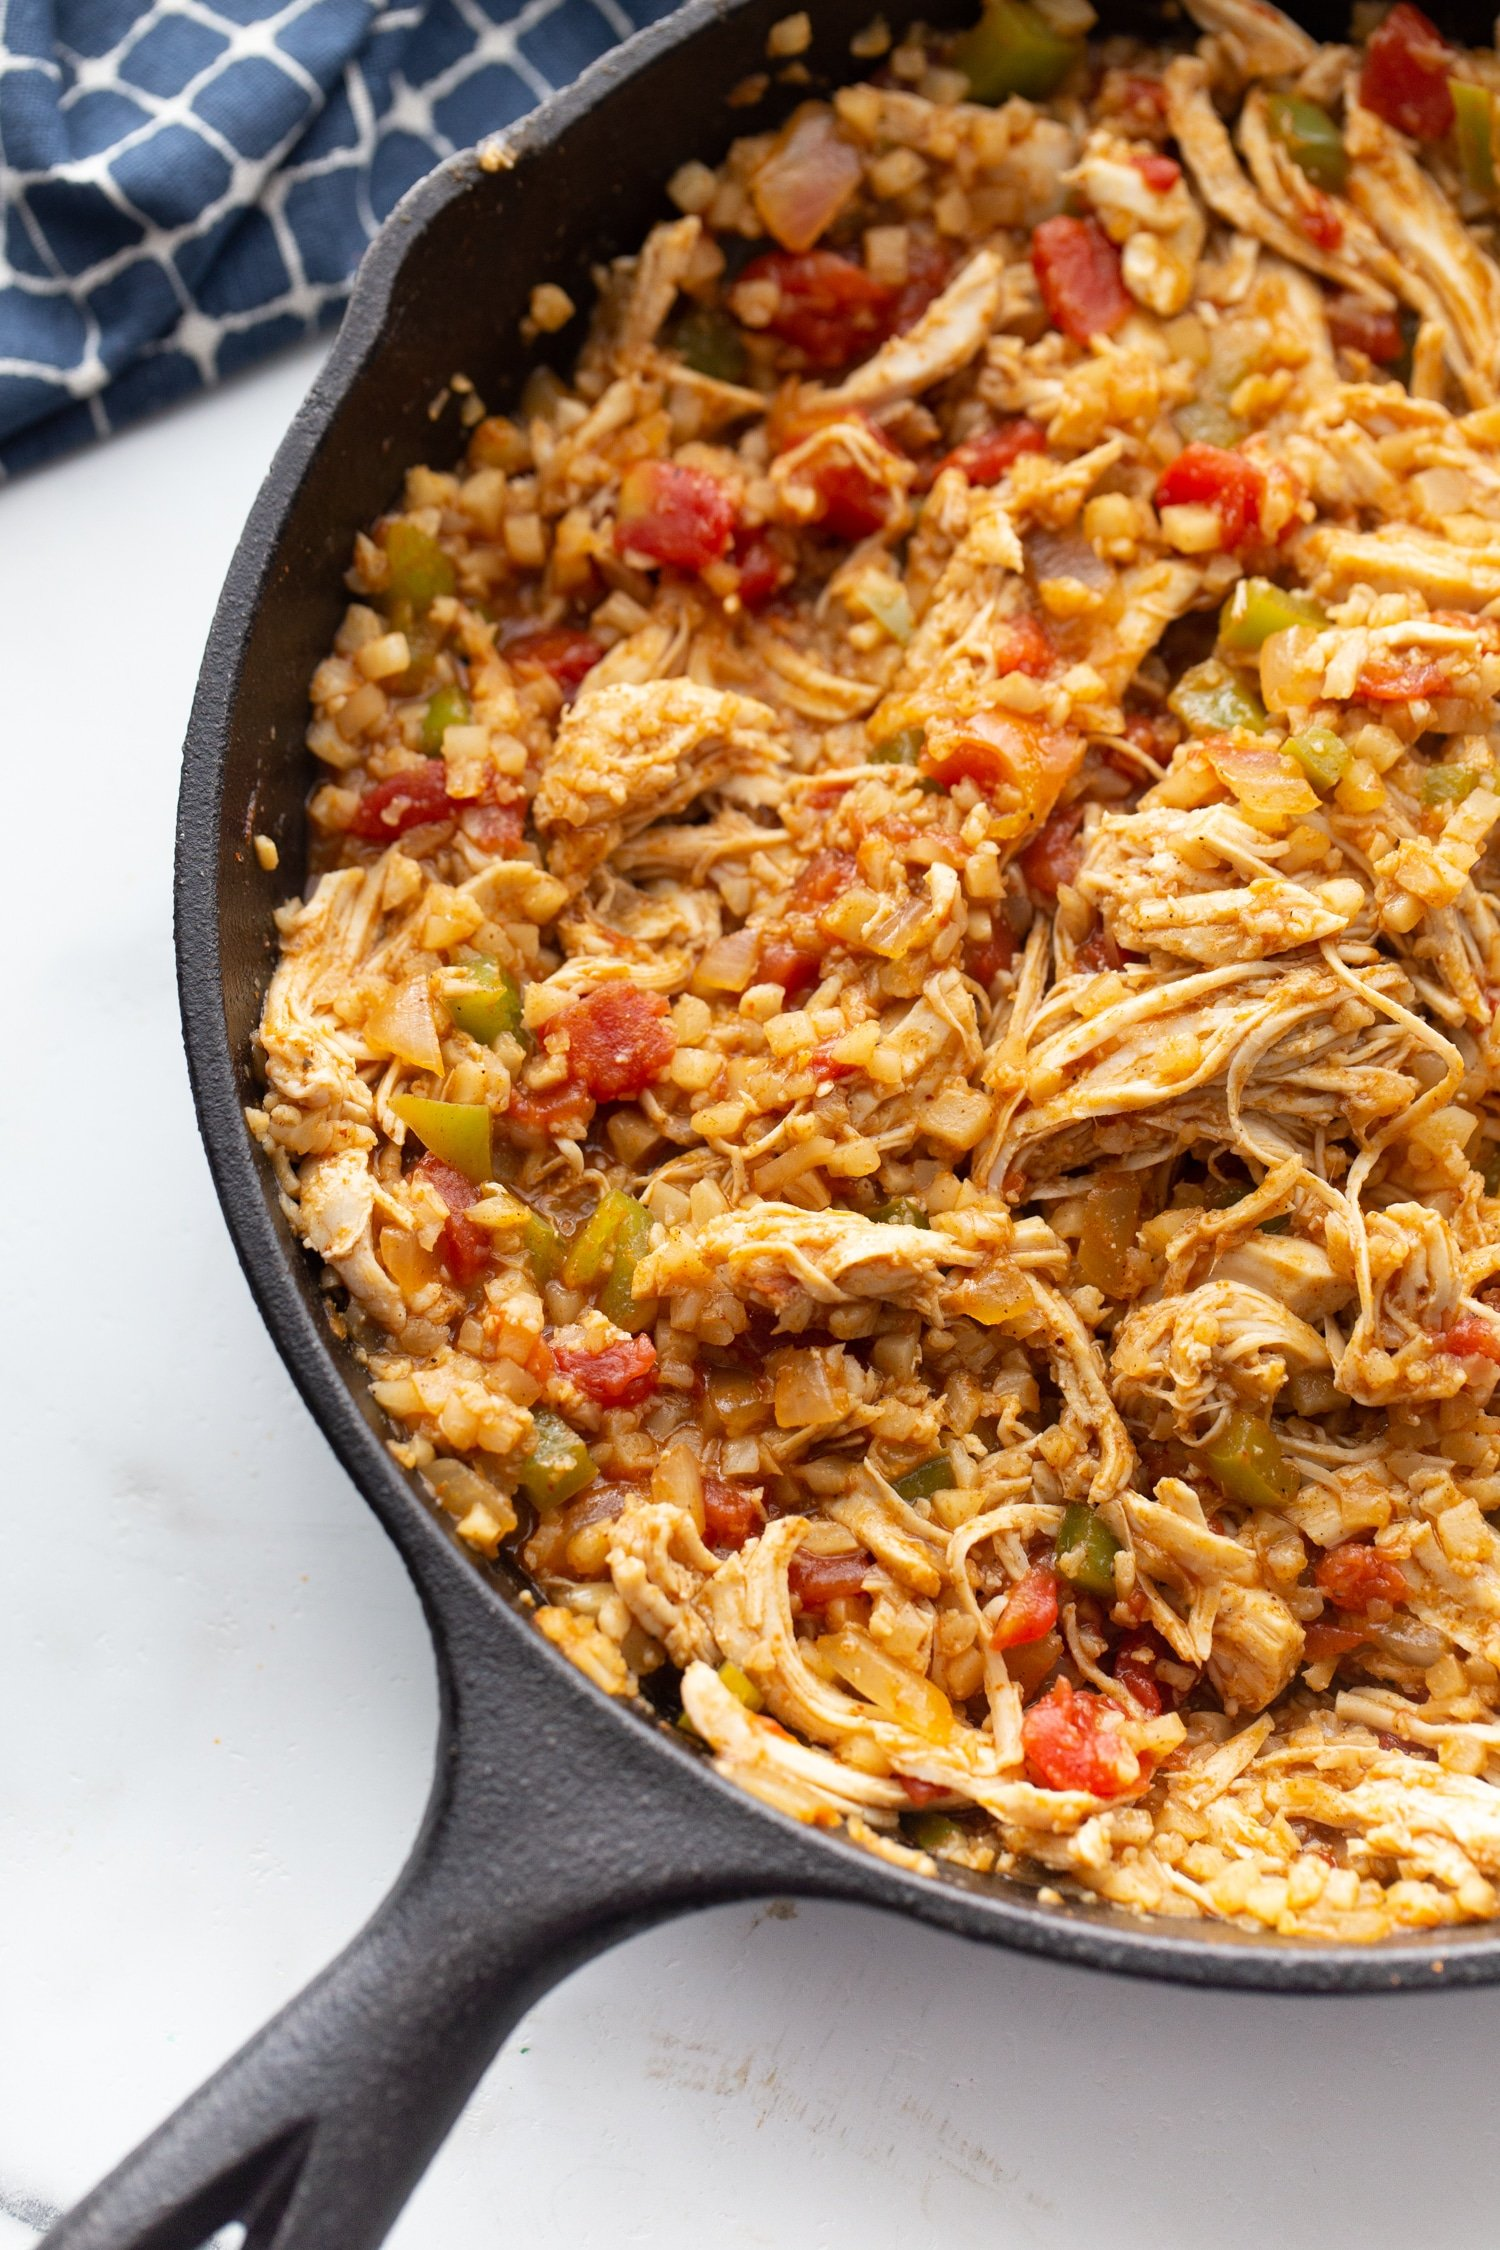 chicken, rotel, and cauliflower rice with taco seasoning in a skillet